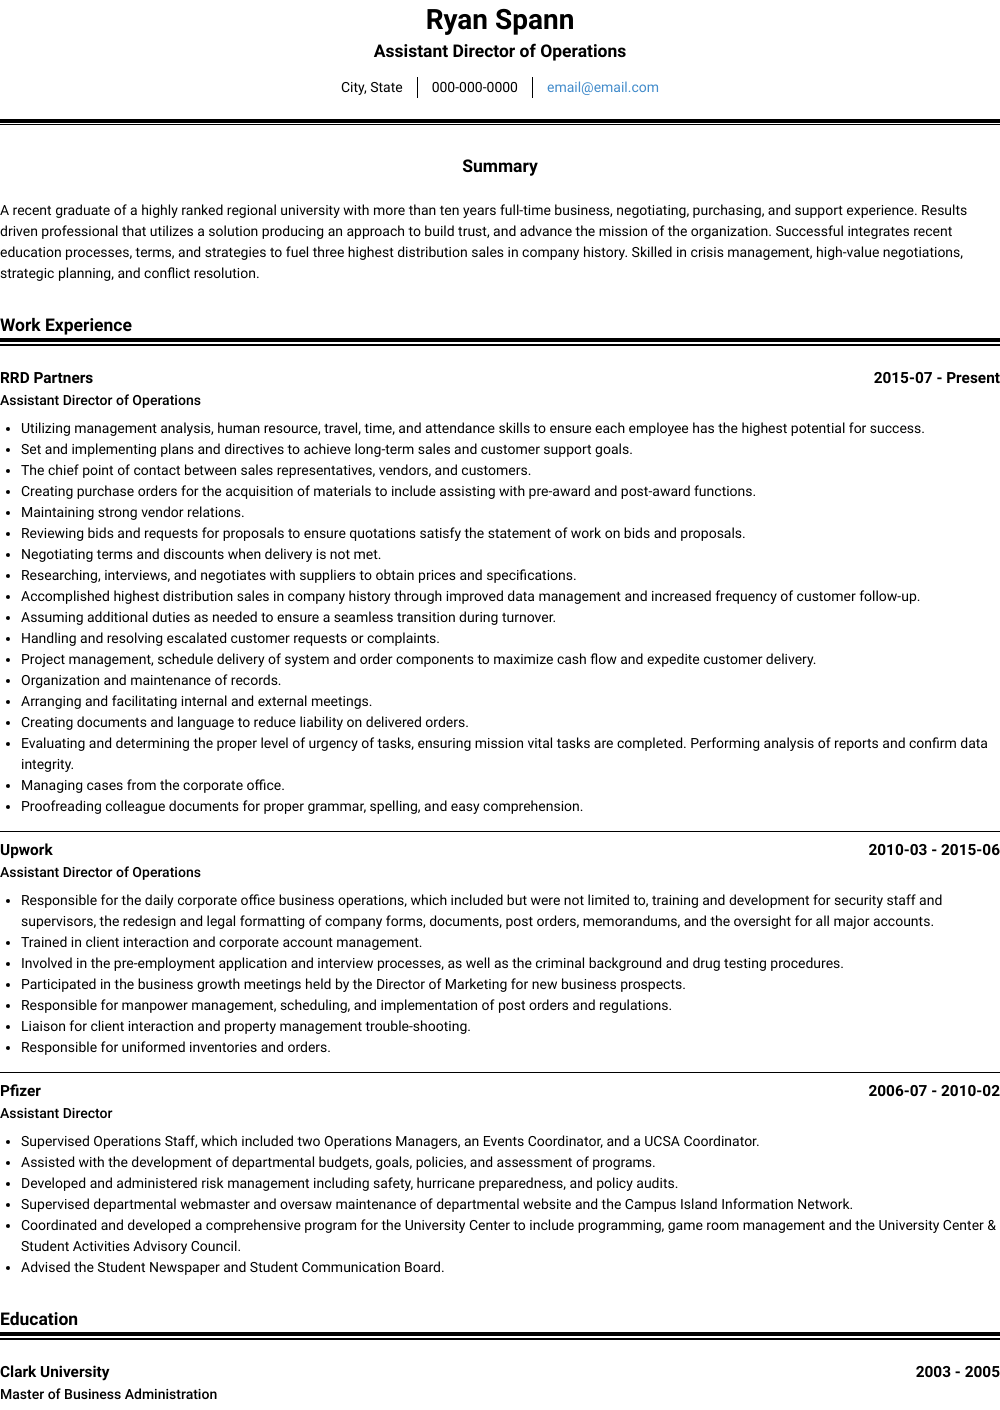 Assistant Director Of Operations Resume Sample and Template